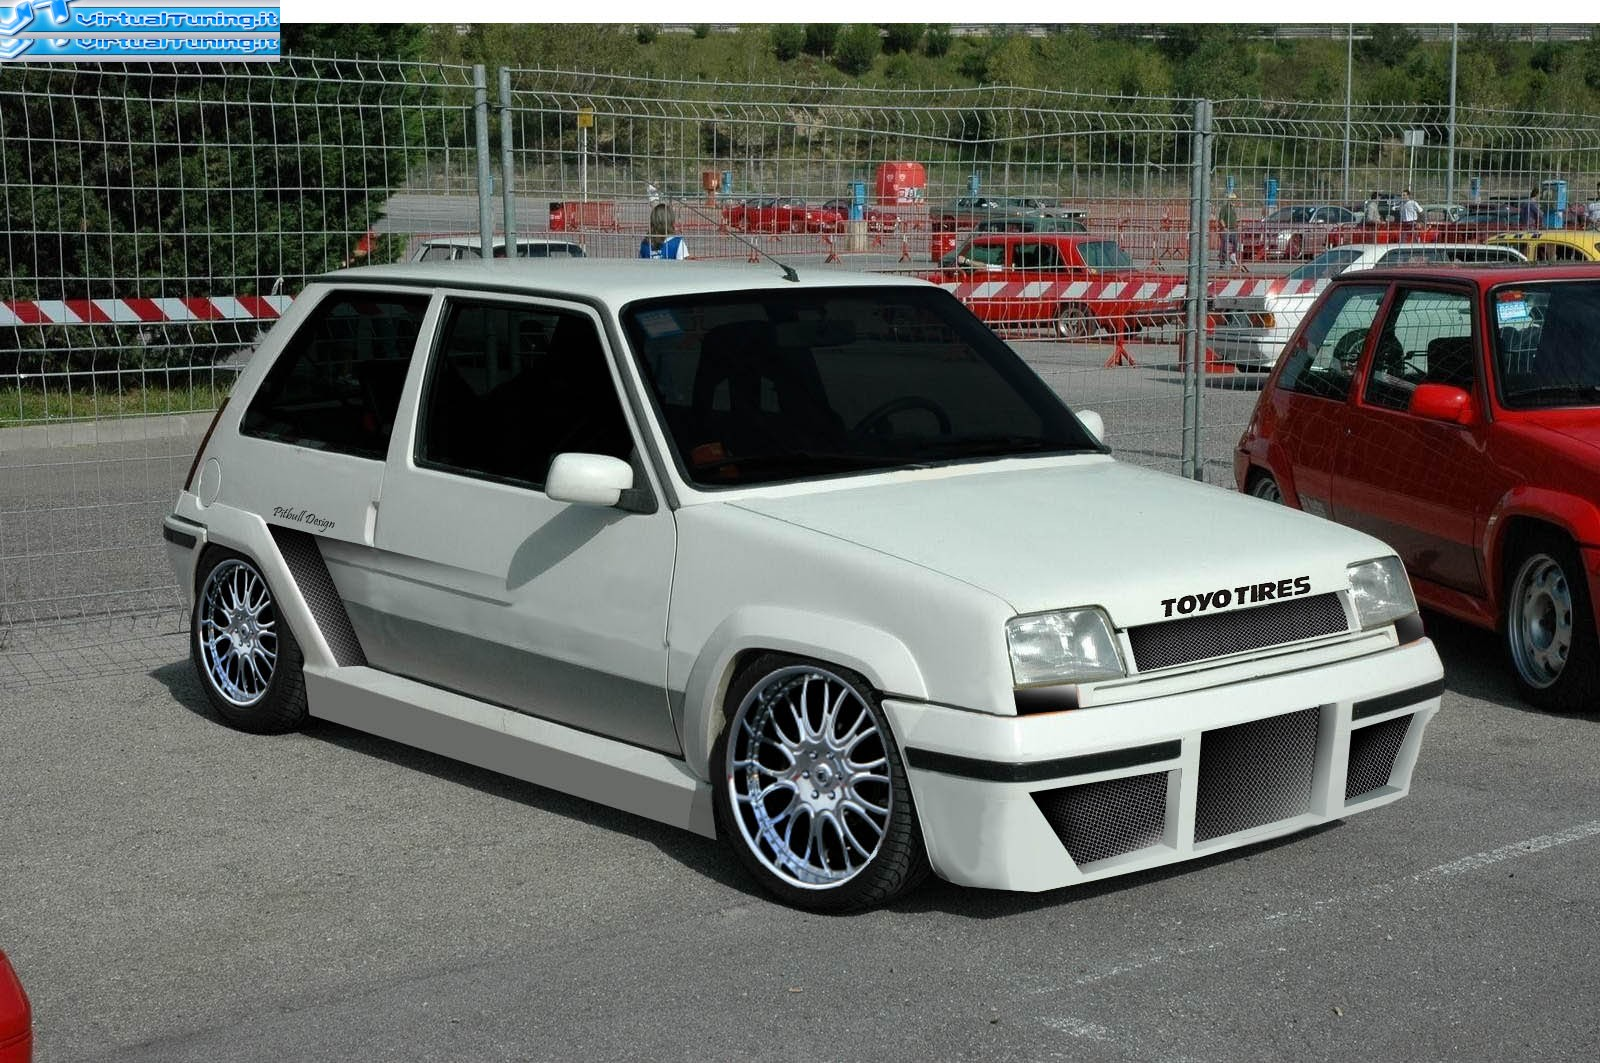 renault 5 gt turbo by pitbull93 virtualtuning it. Black Bedroom Furniture Sets. Home Design Ideas